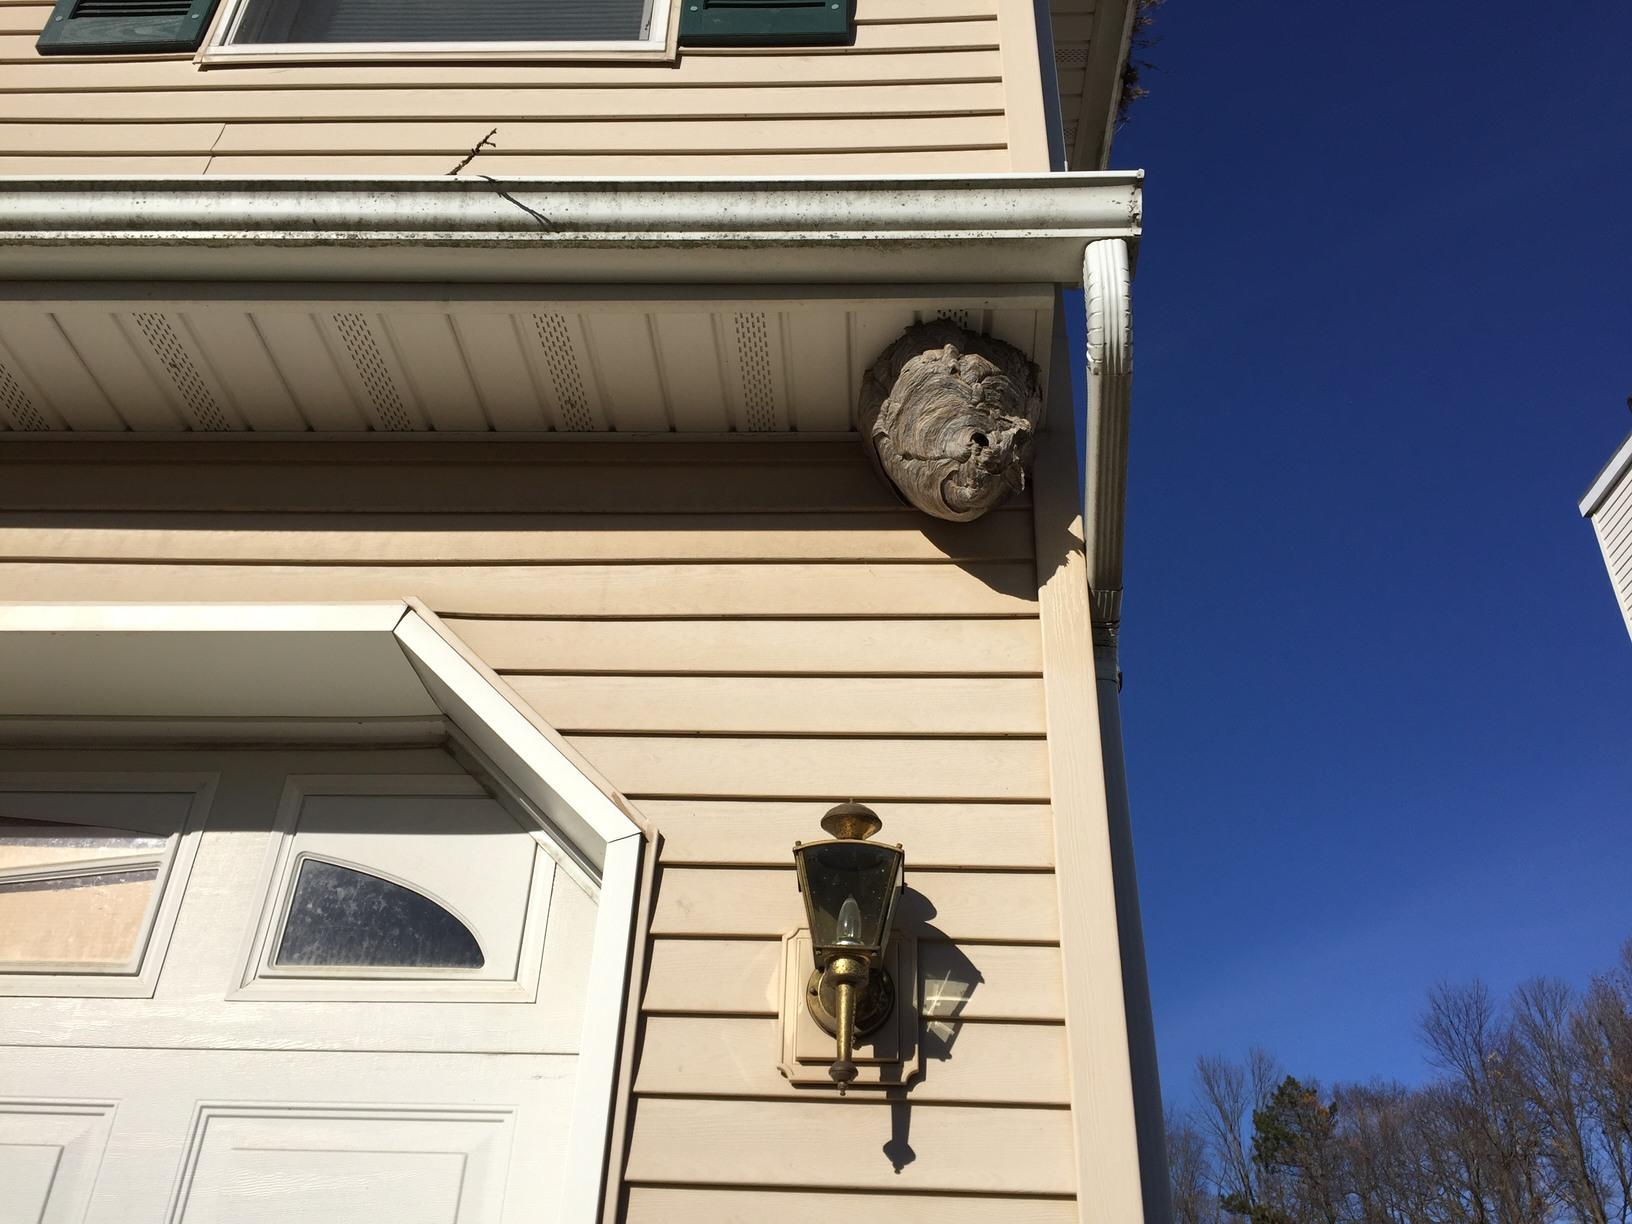 Hornets nest close up in Fords, New Jersey